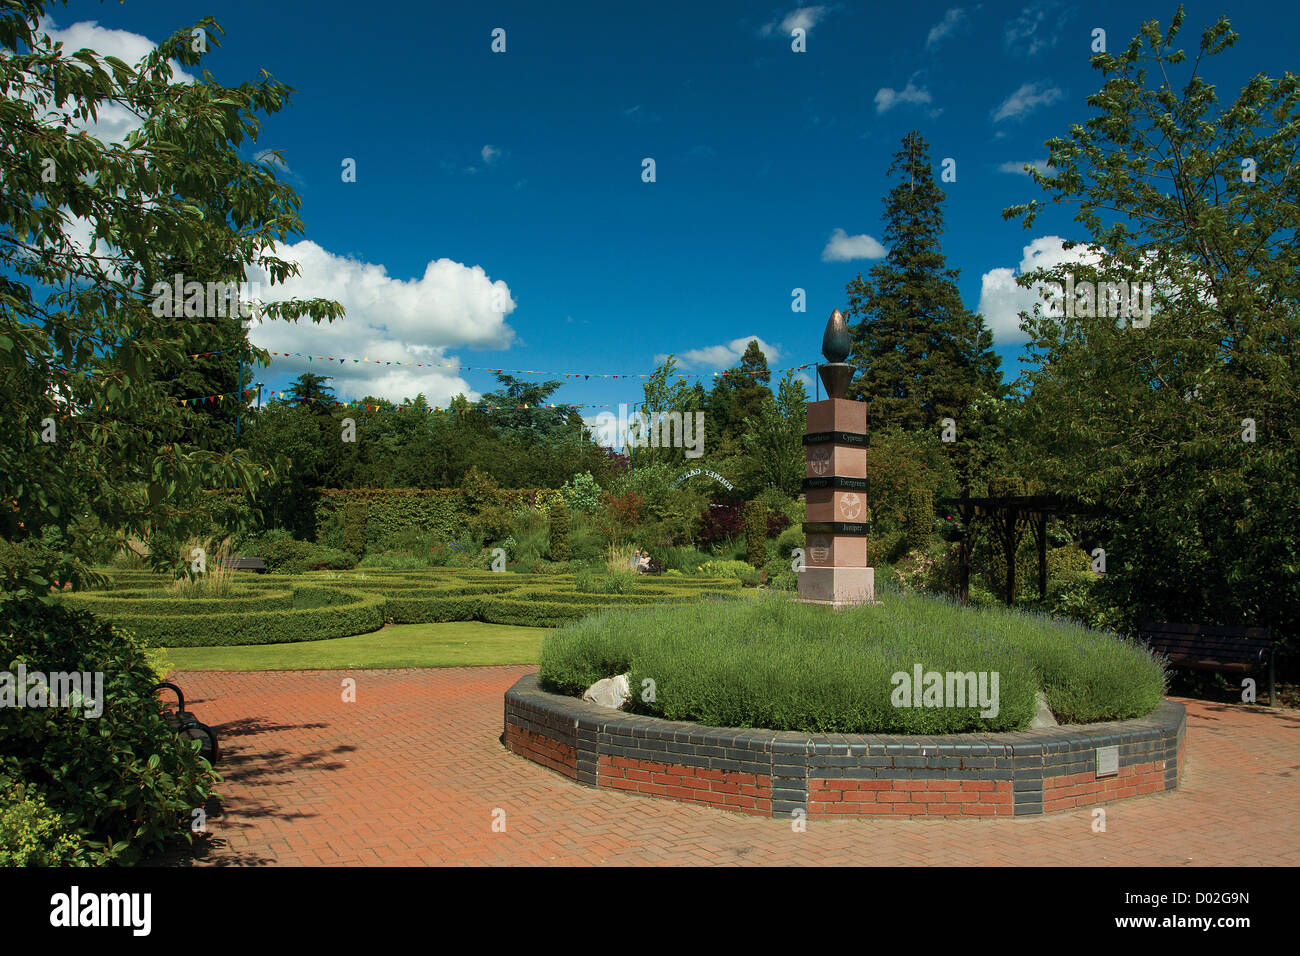 Rodney Gardens, Perth, Perthshire - Stock Image